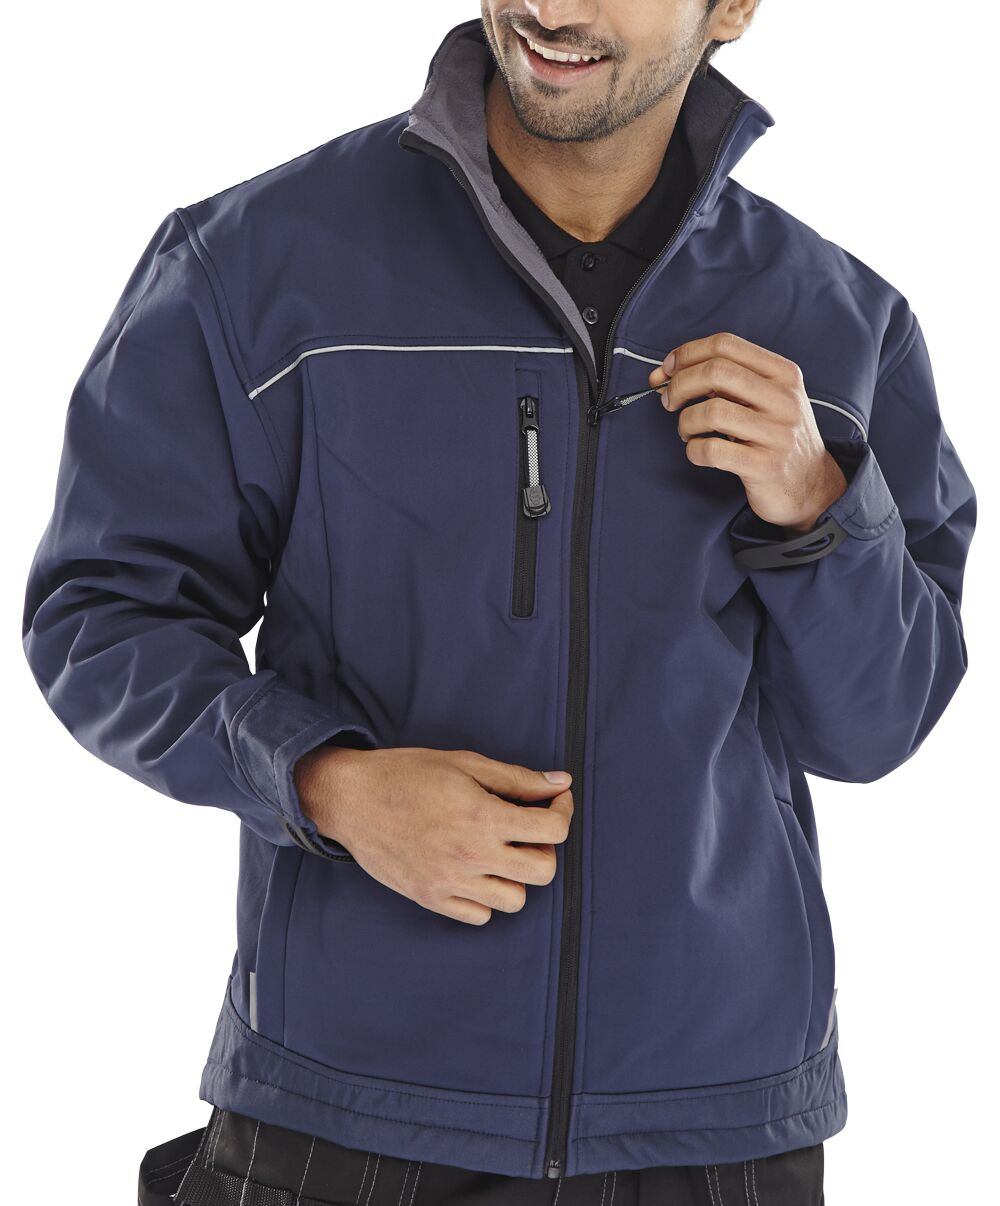 Soft Shell Click Workwear Soft Shell Jacket Water Resistant Windproof Medium Navy Ref SSJNM *Approx 3 Day Leadtime*